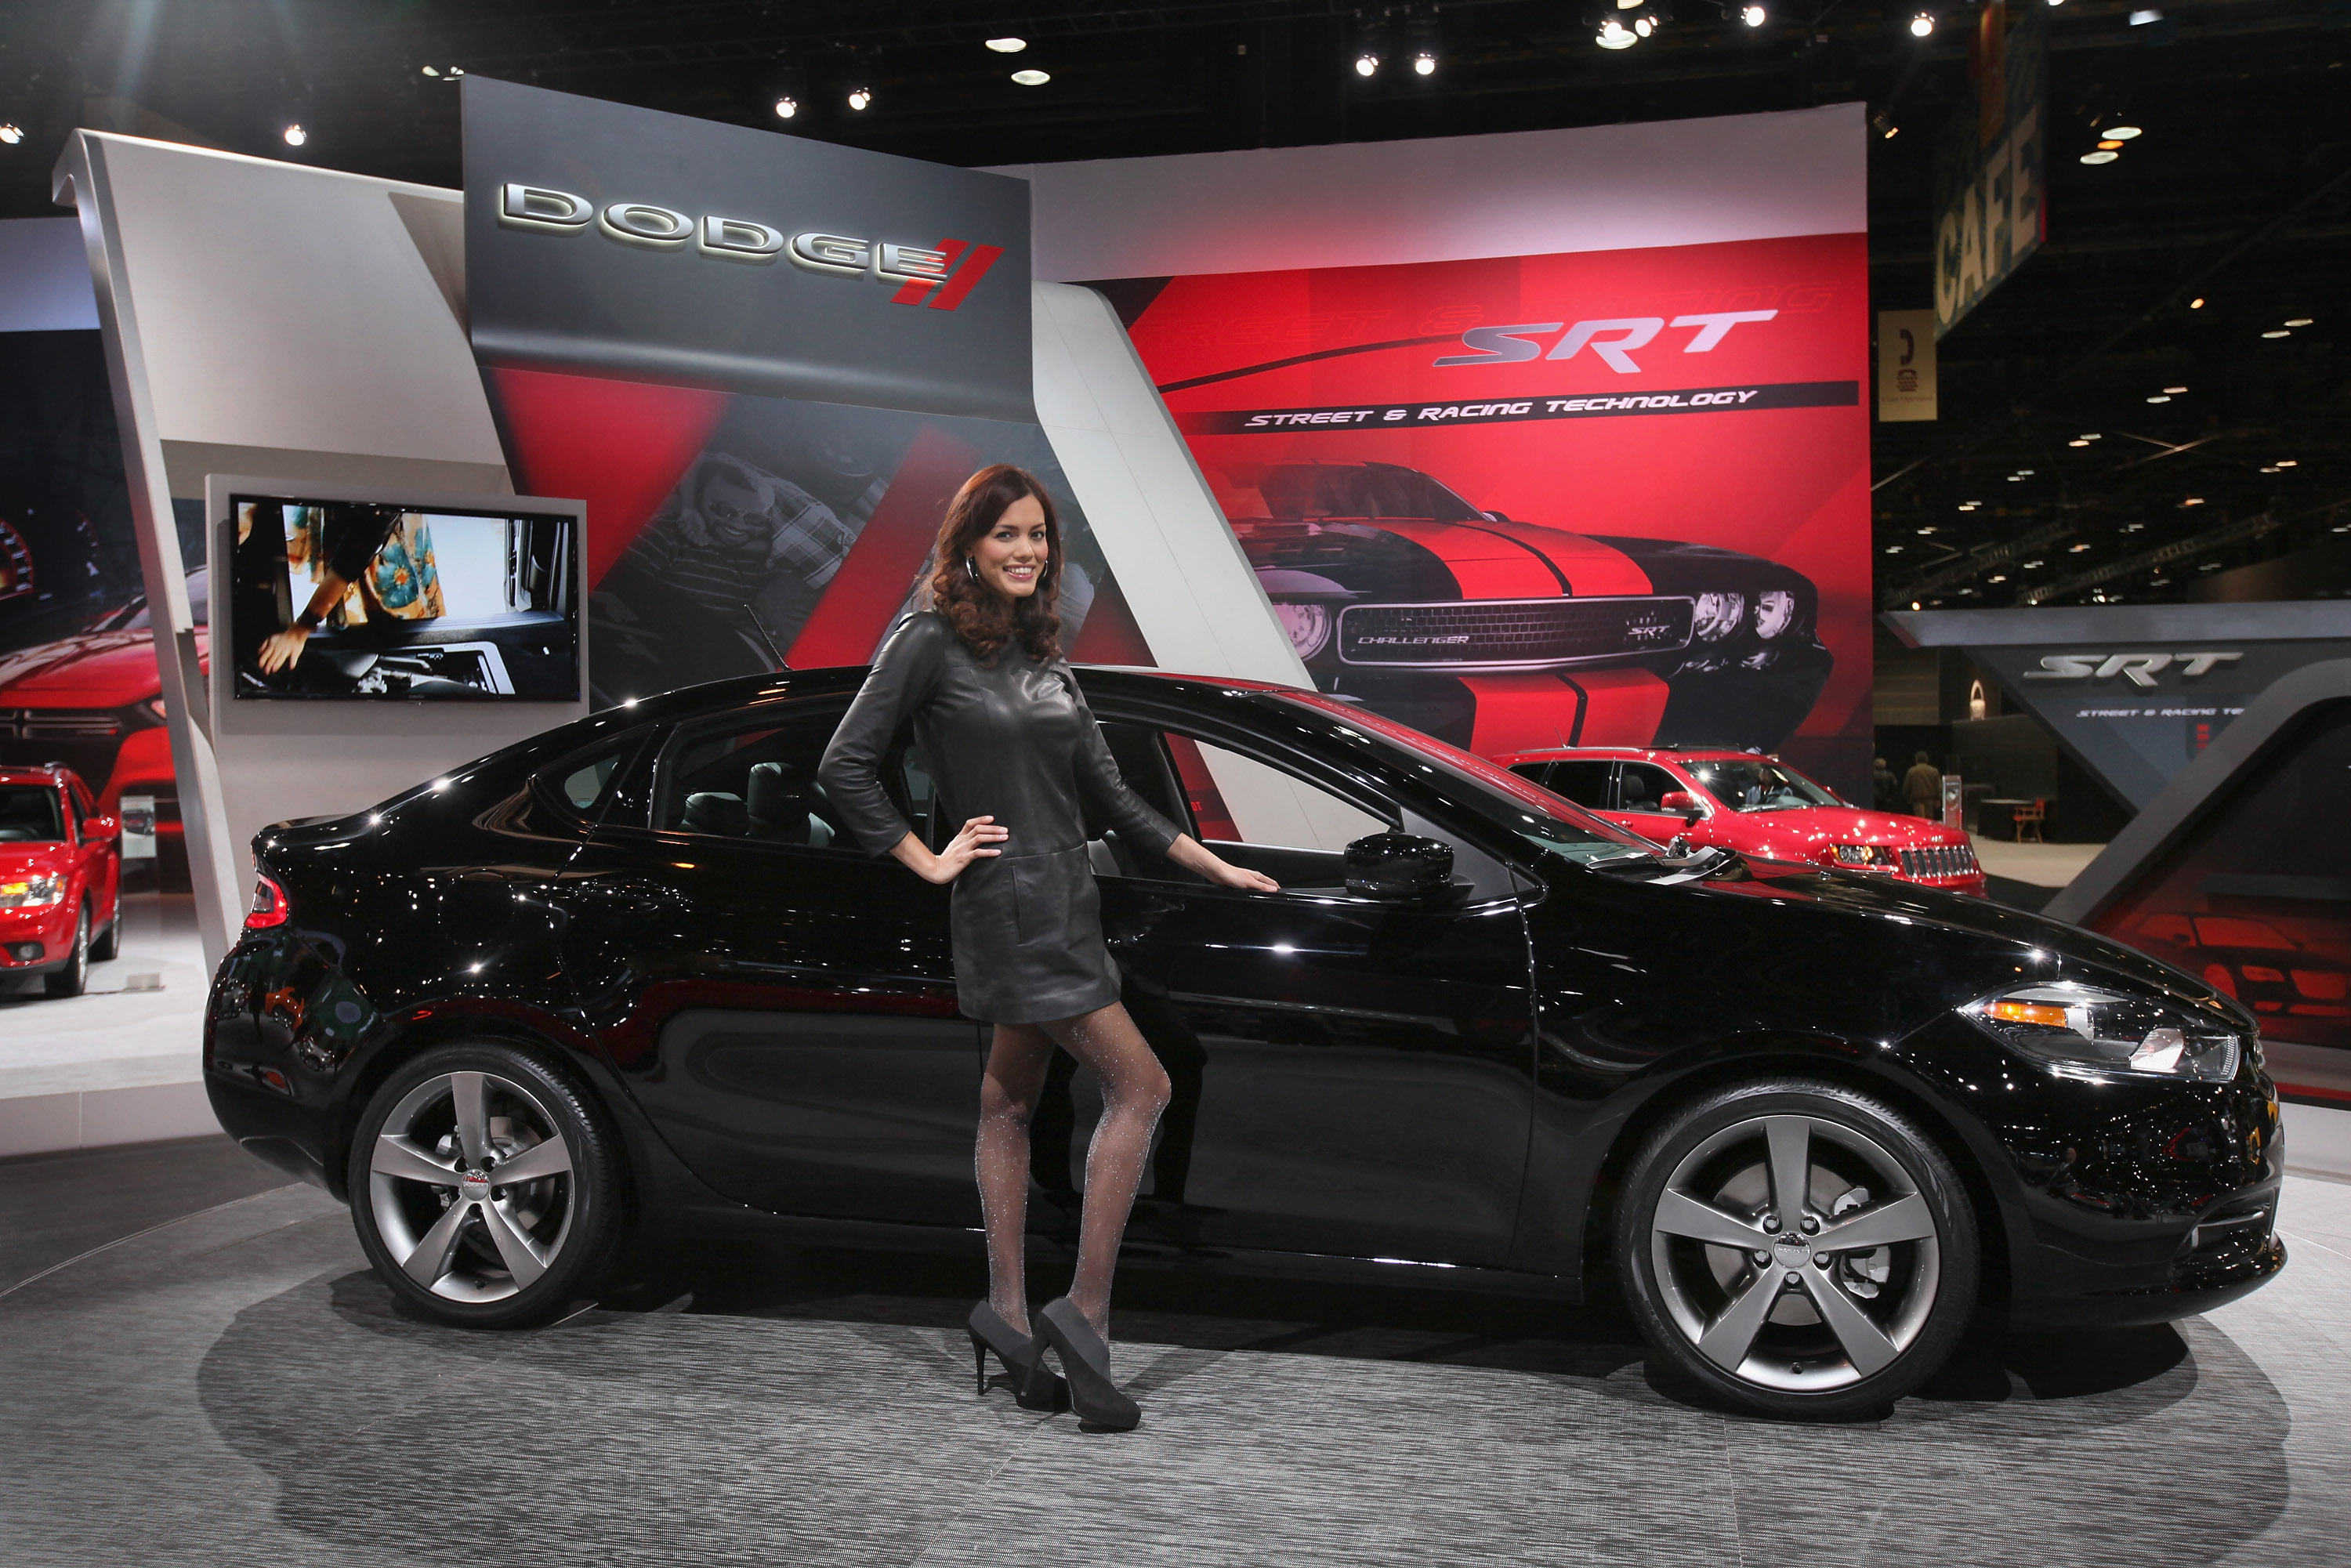 Video The Dodge Dart Is Back For 2013 Cbs Seattle